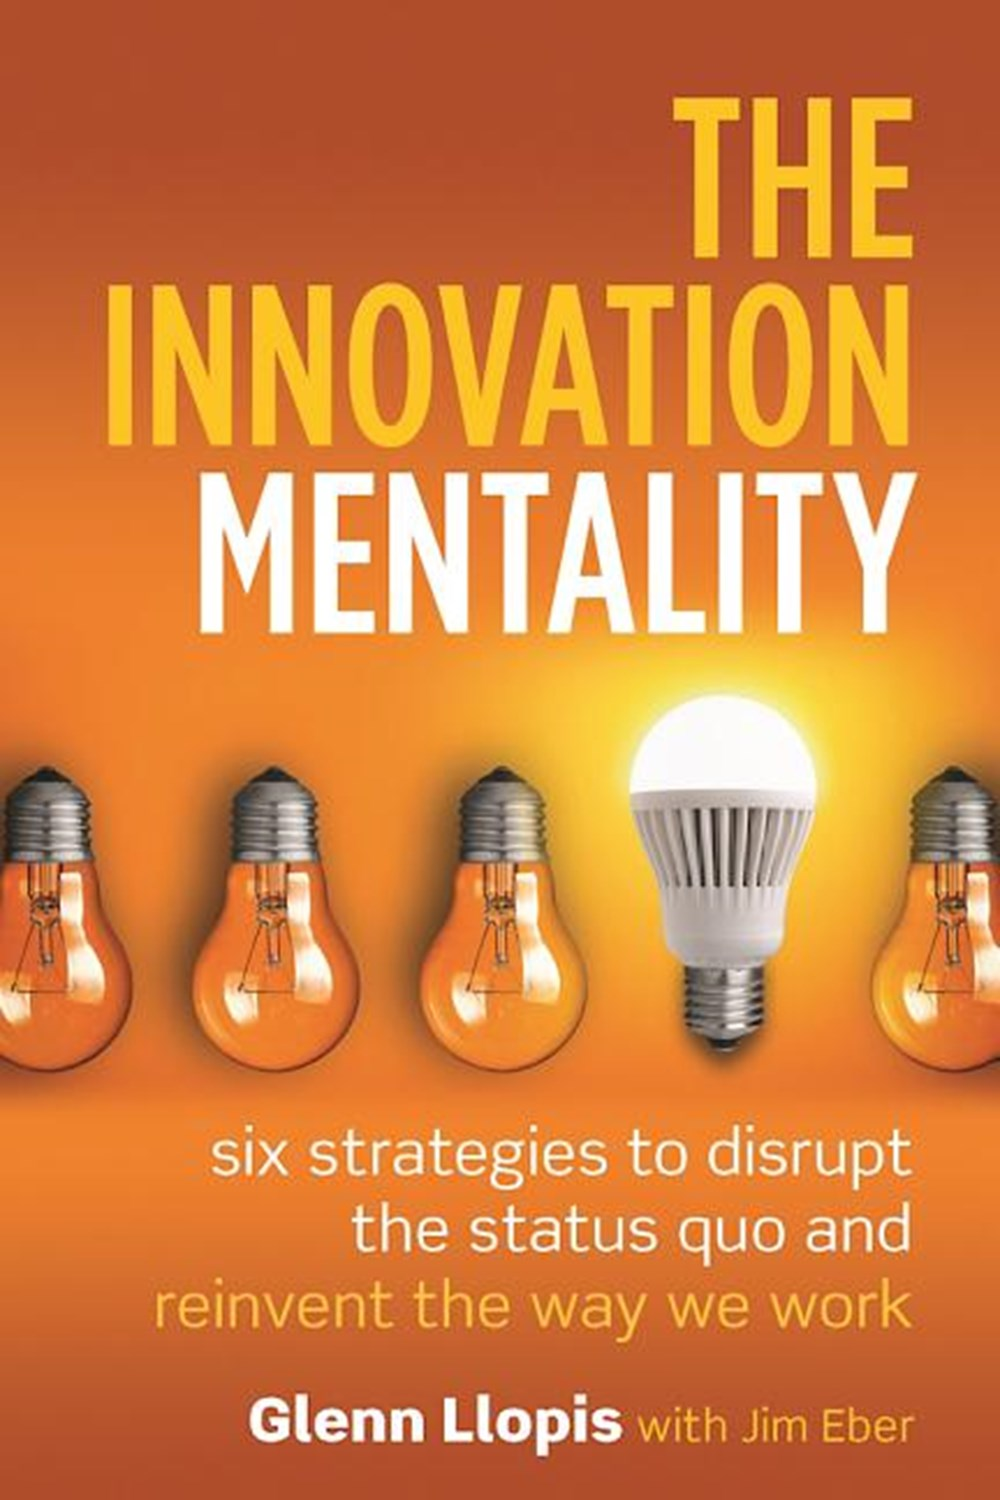 Innovation Mentality Six Strategies to Disrupt the Status Quo and Reinvent the Way We Work